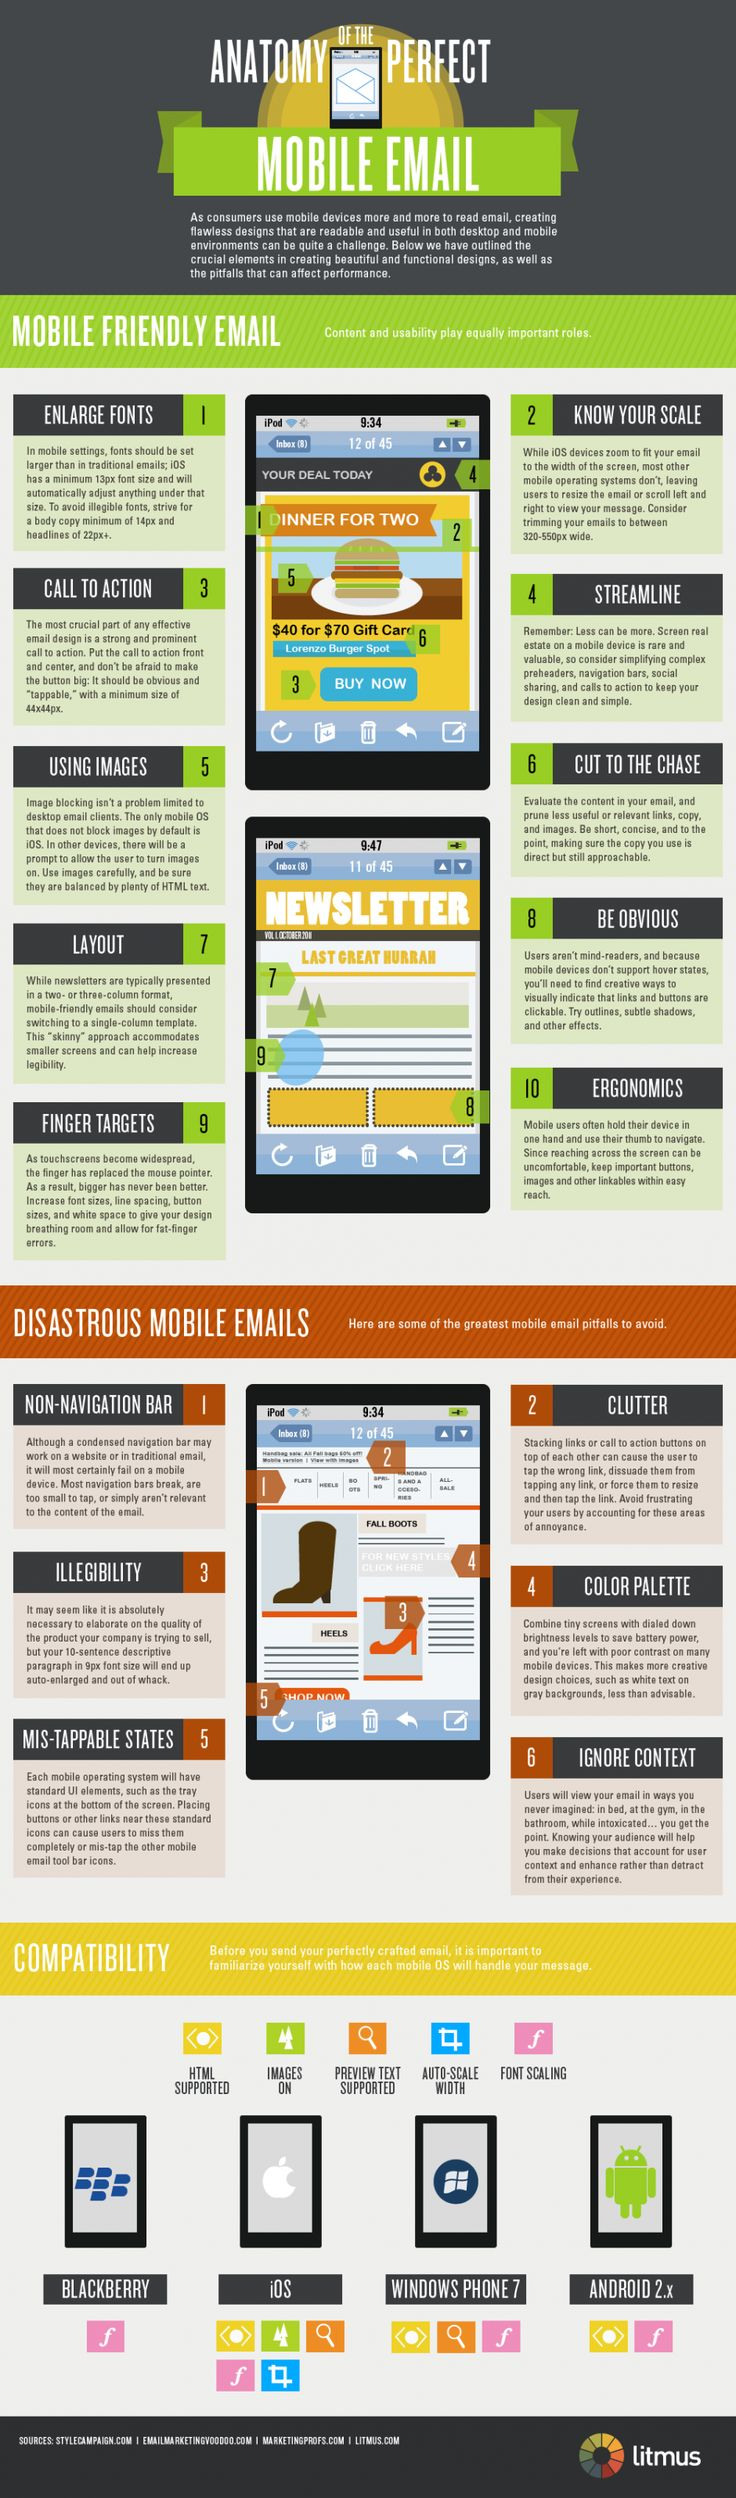 The anatomy of the perfect mobile email